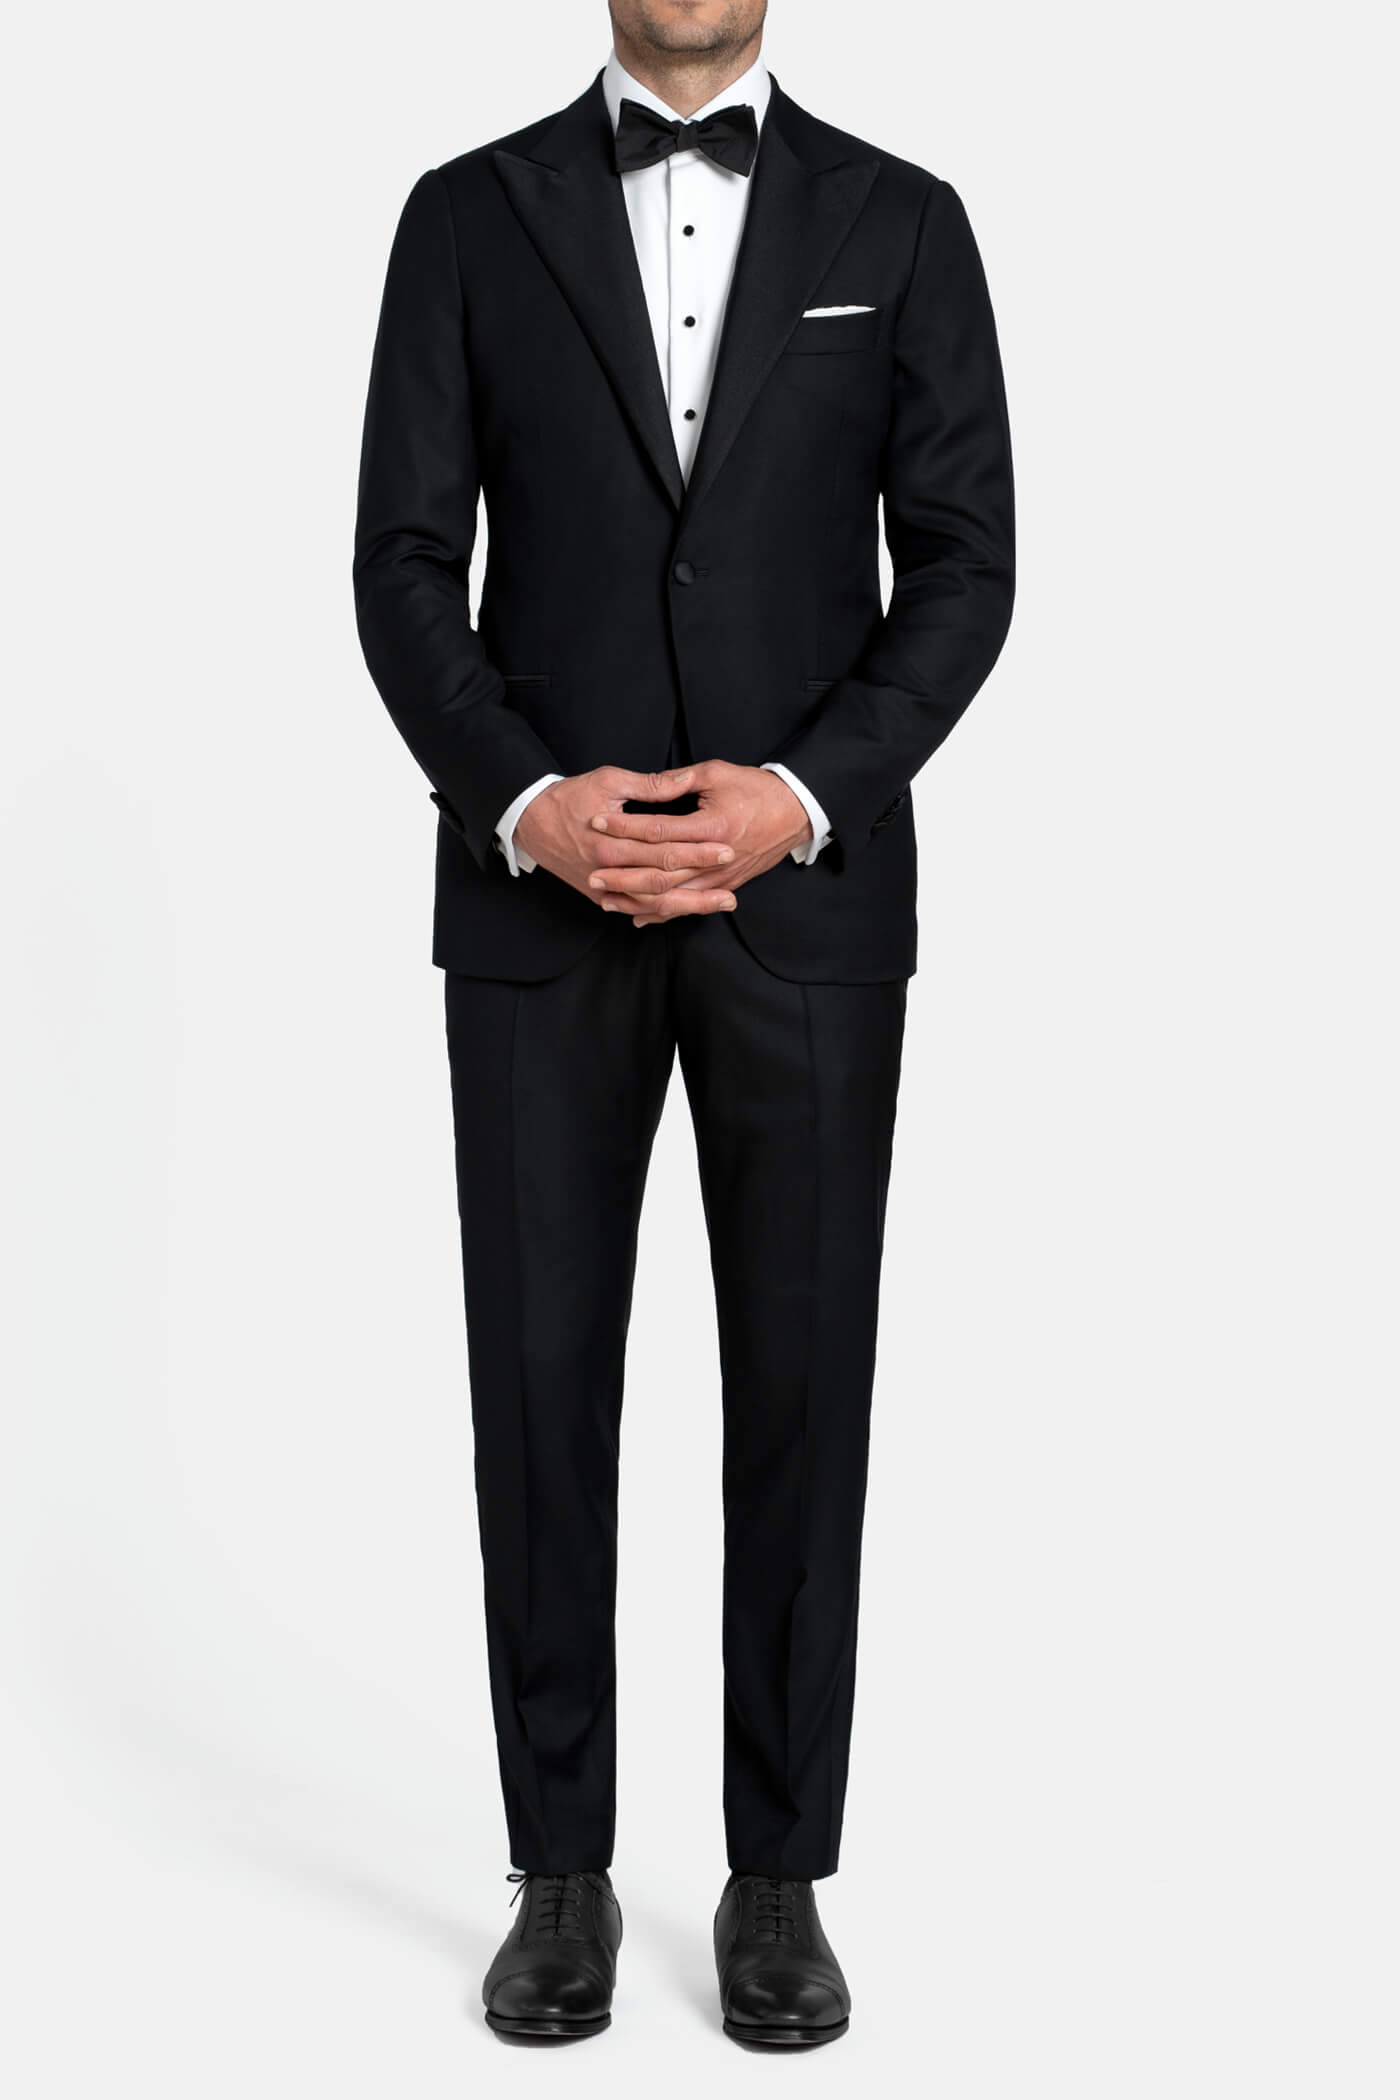 Mayfair Black Wool Tuxedo